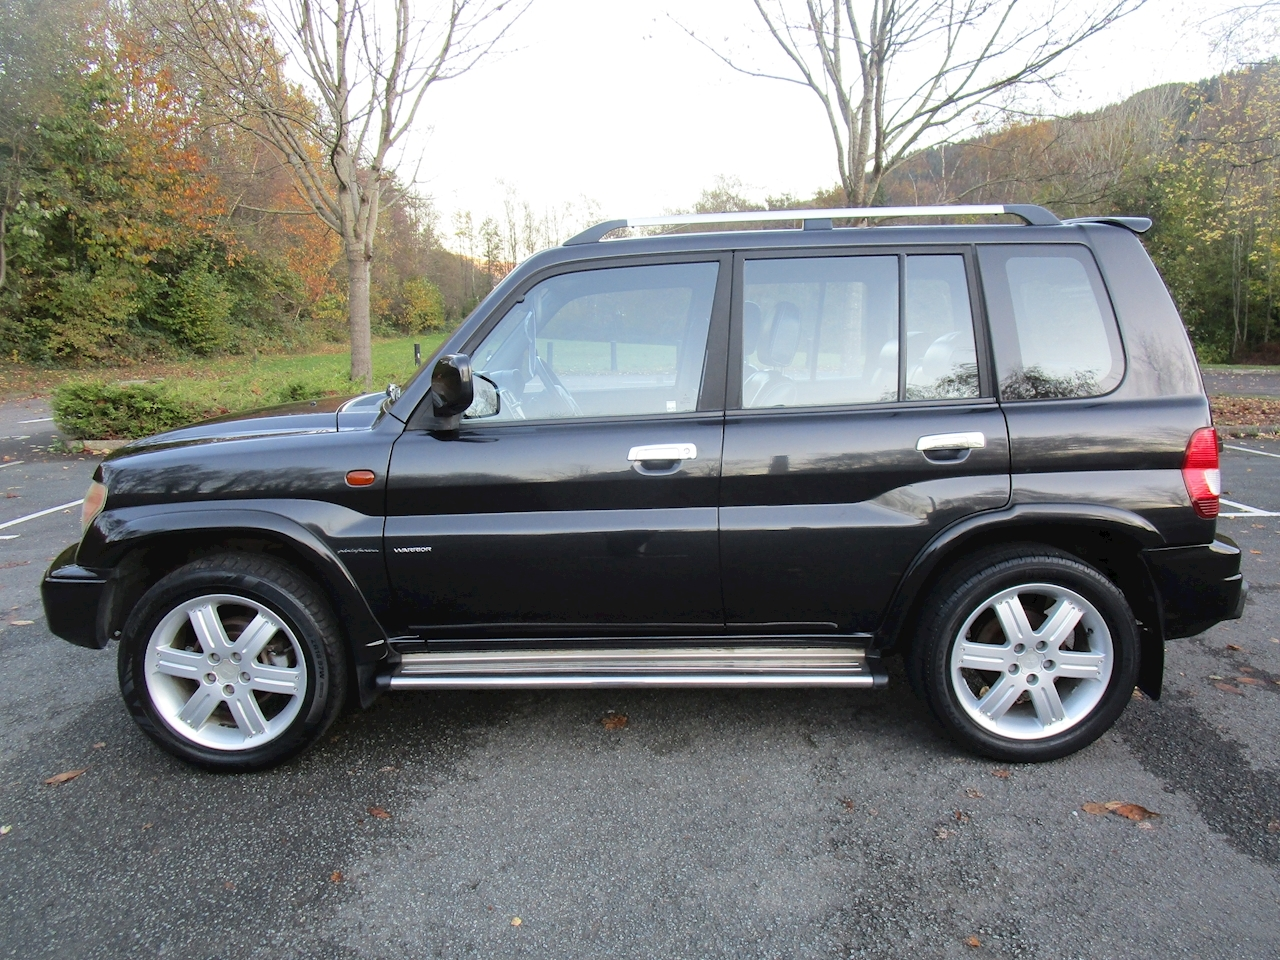 Shogun Pinin Gdi Warrior Estate 2.0 Manual Petrol